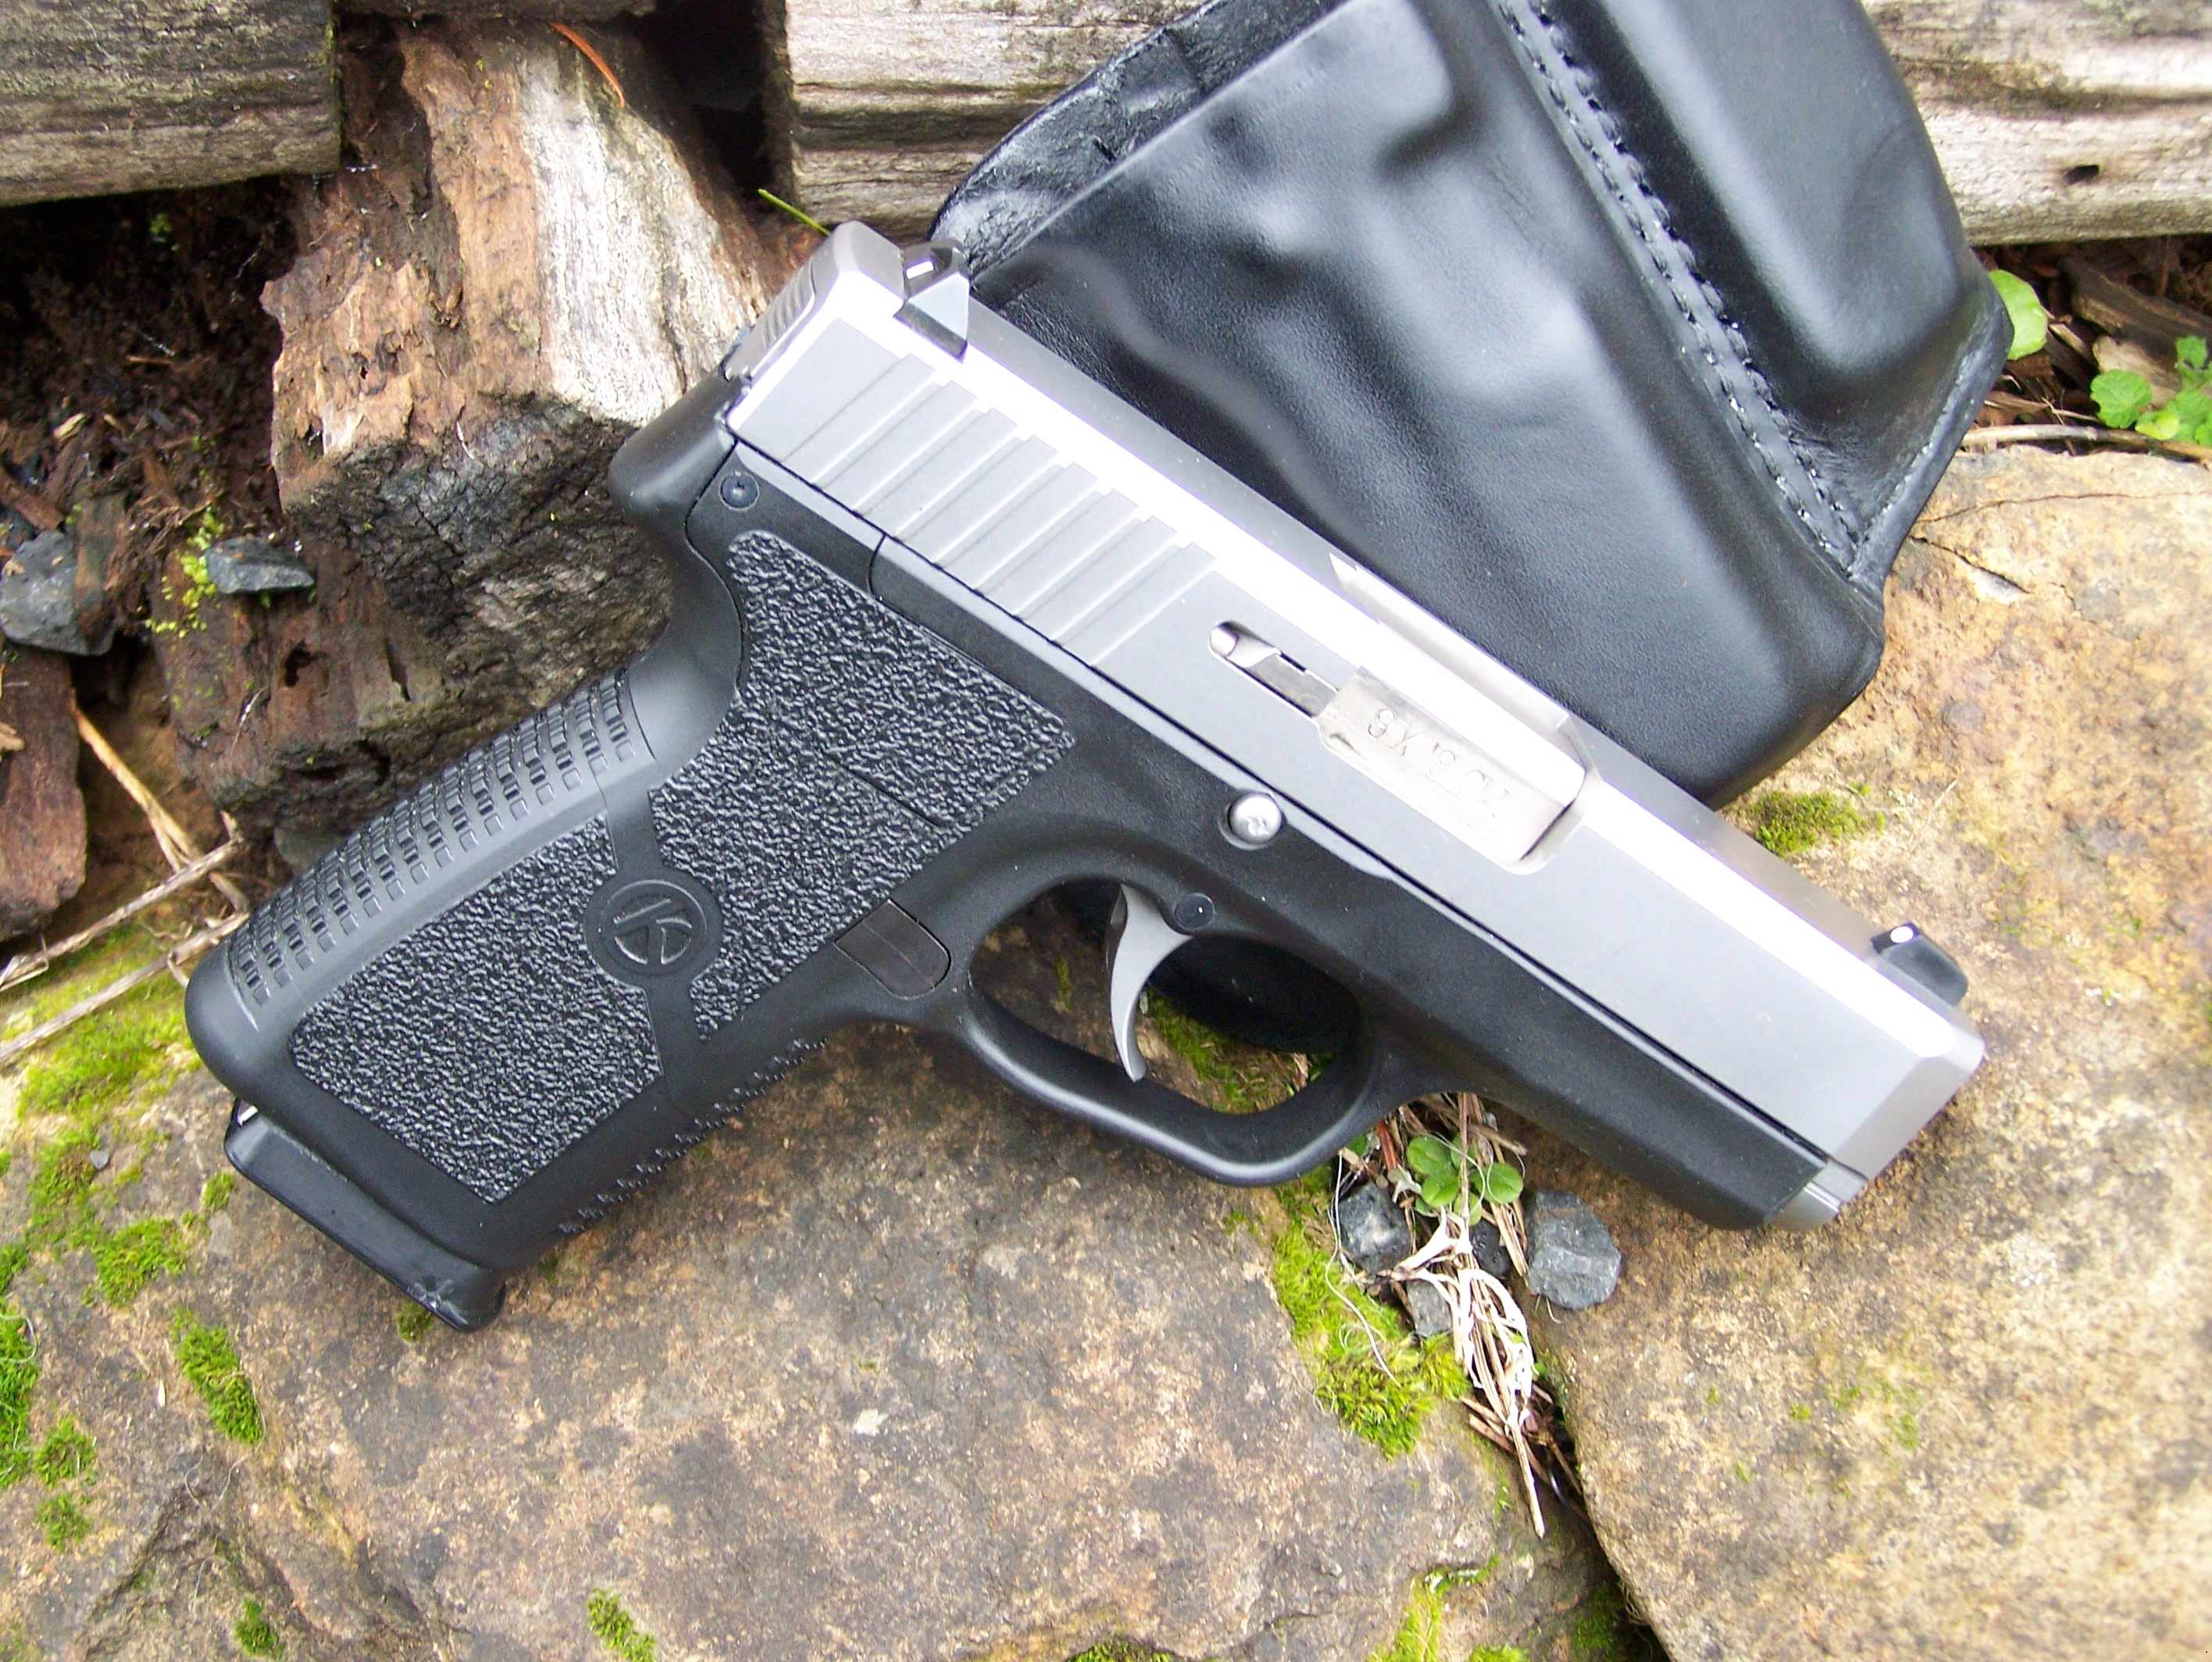 Review: Kahr Arms CW9 - Kahr Arms - A leader in technology and